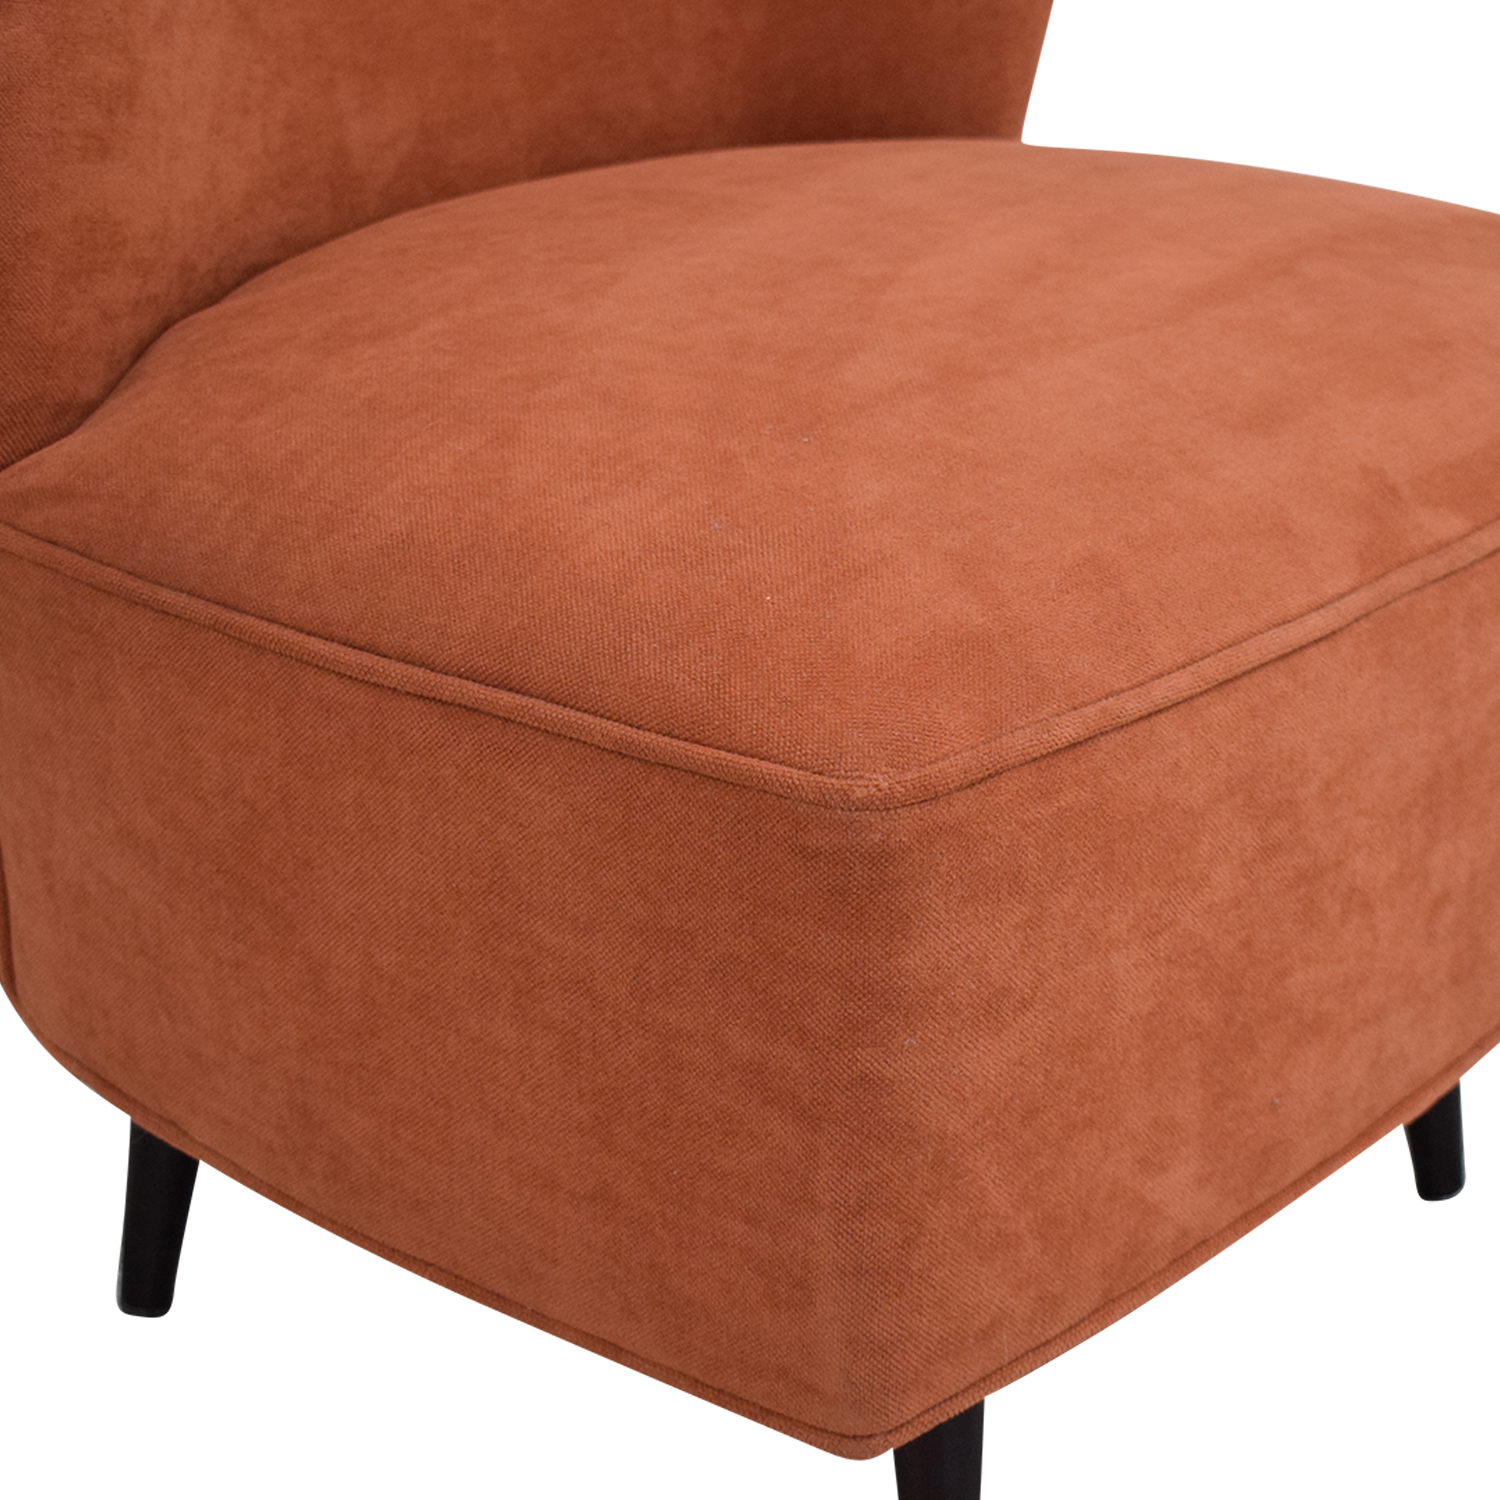 buy Room and Board Mid Century Swivel Chair Room & Board Chairs